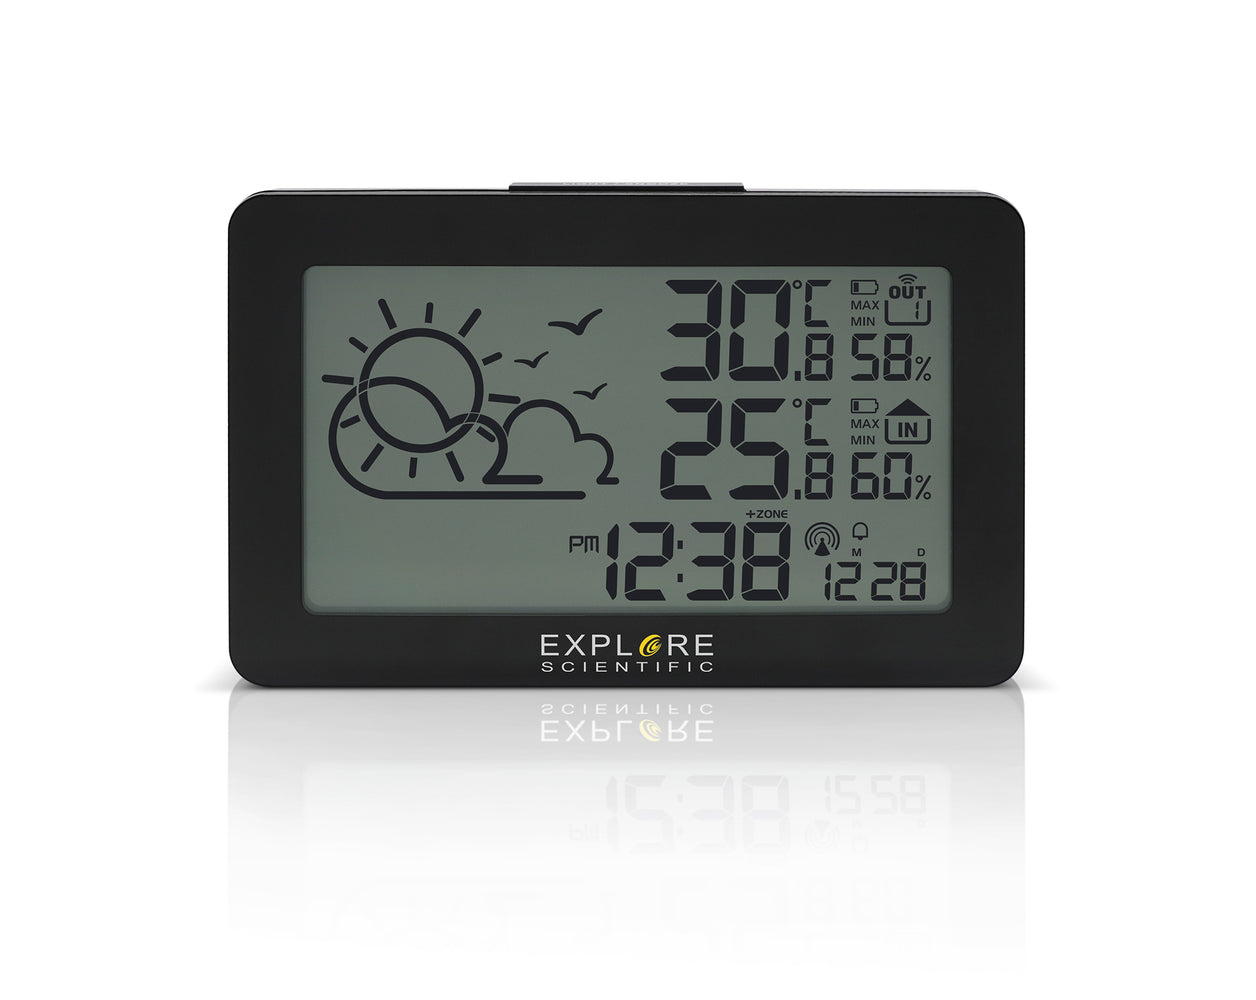 COMING SOON! Explore Scientific Large Display Weather Station with Temperature and Humidity